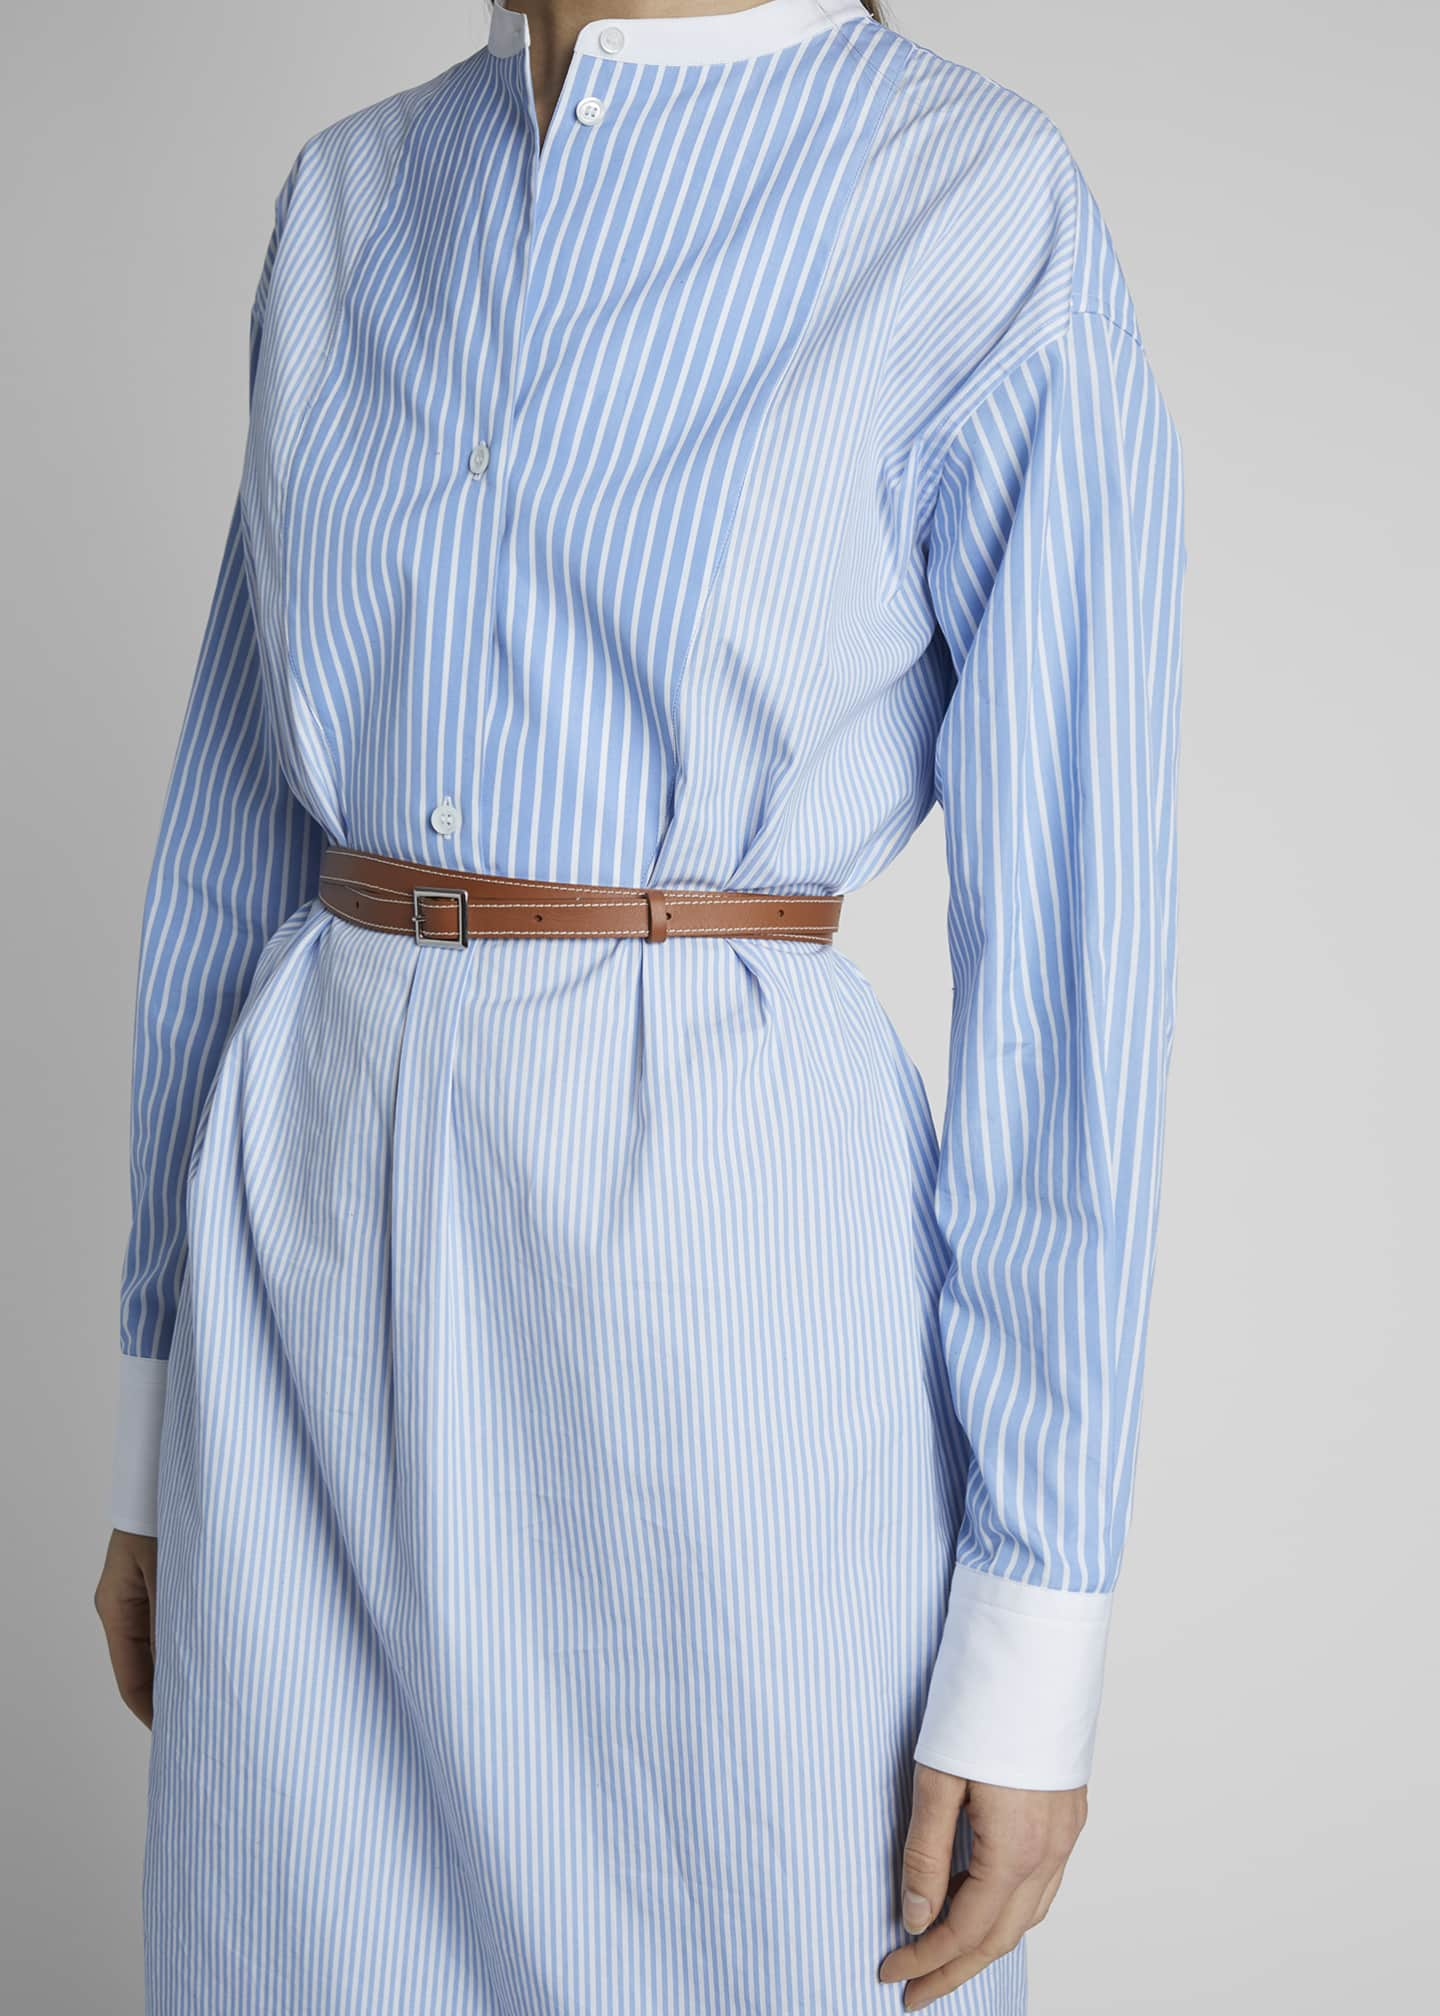 Image 4 of 4: Striped Cotton Shirtdress with Leather Belt